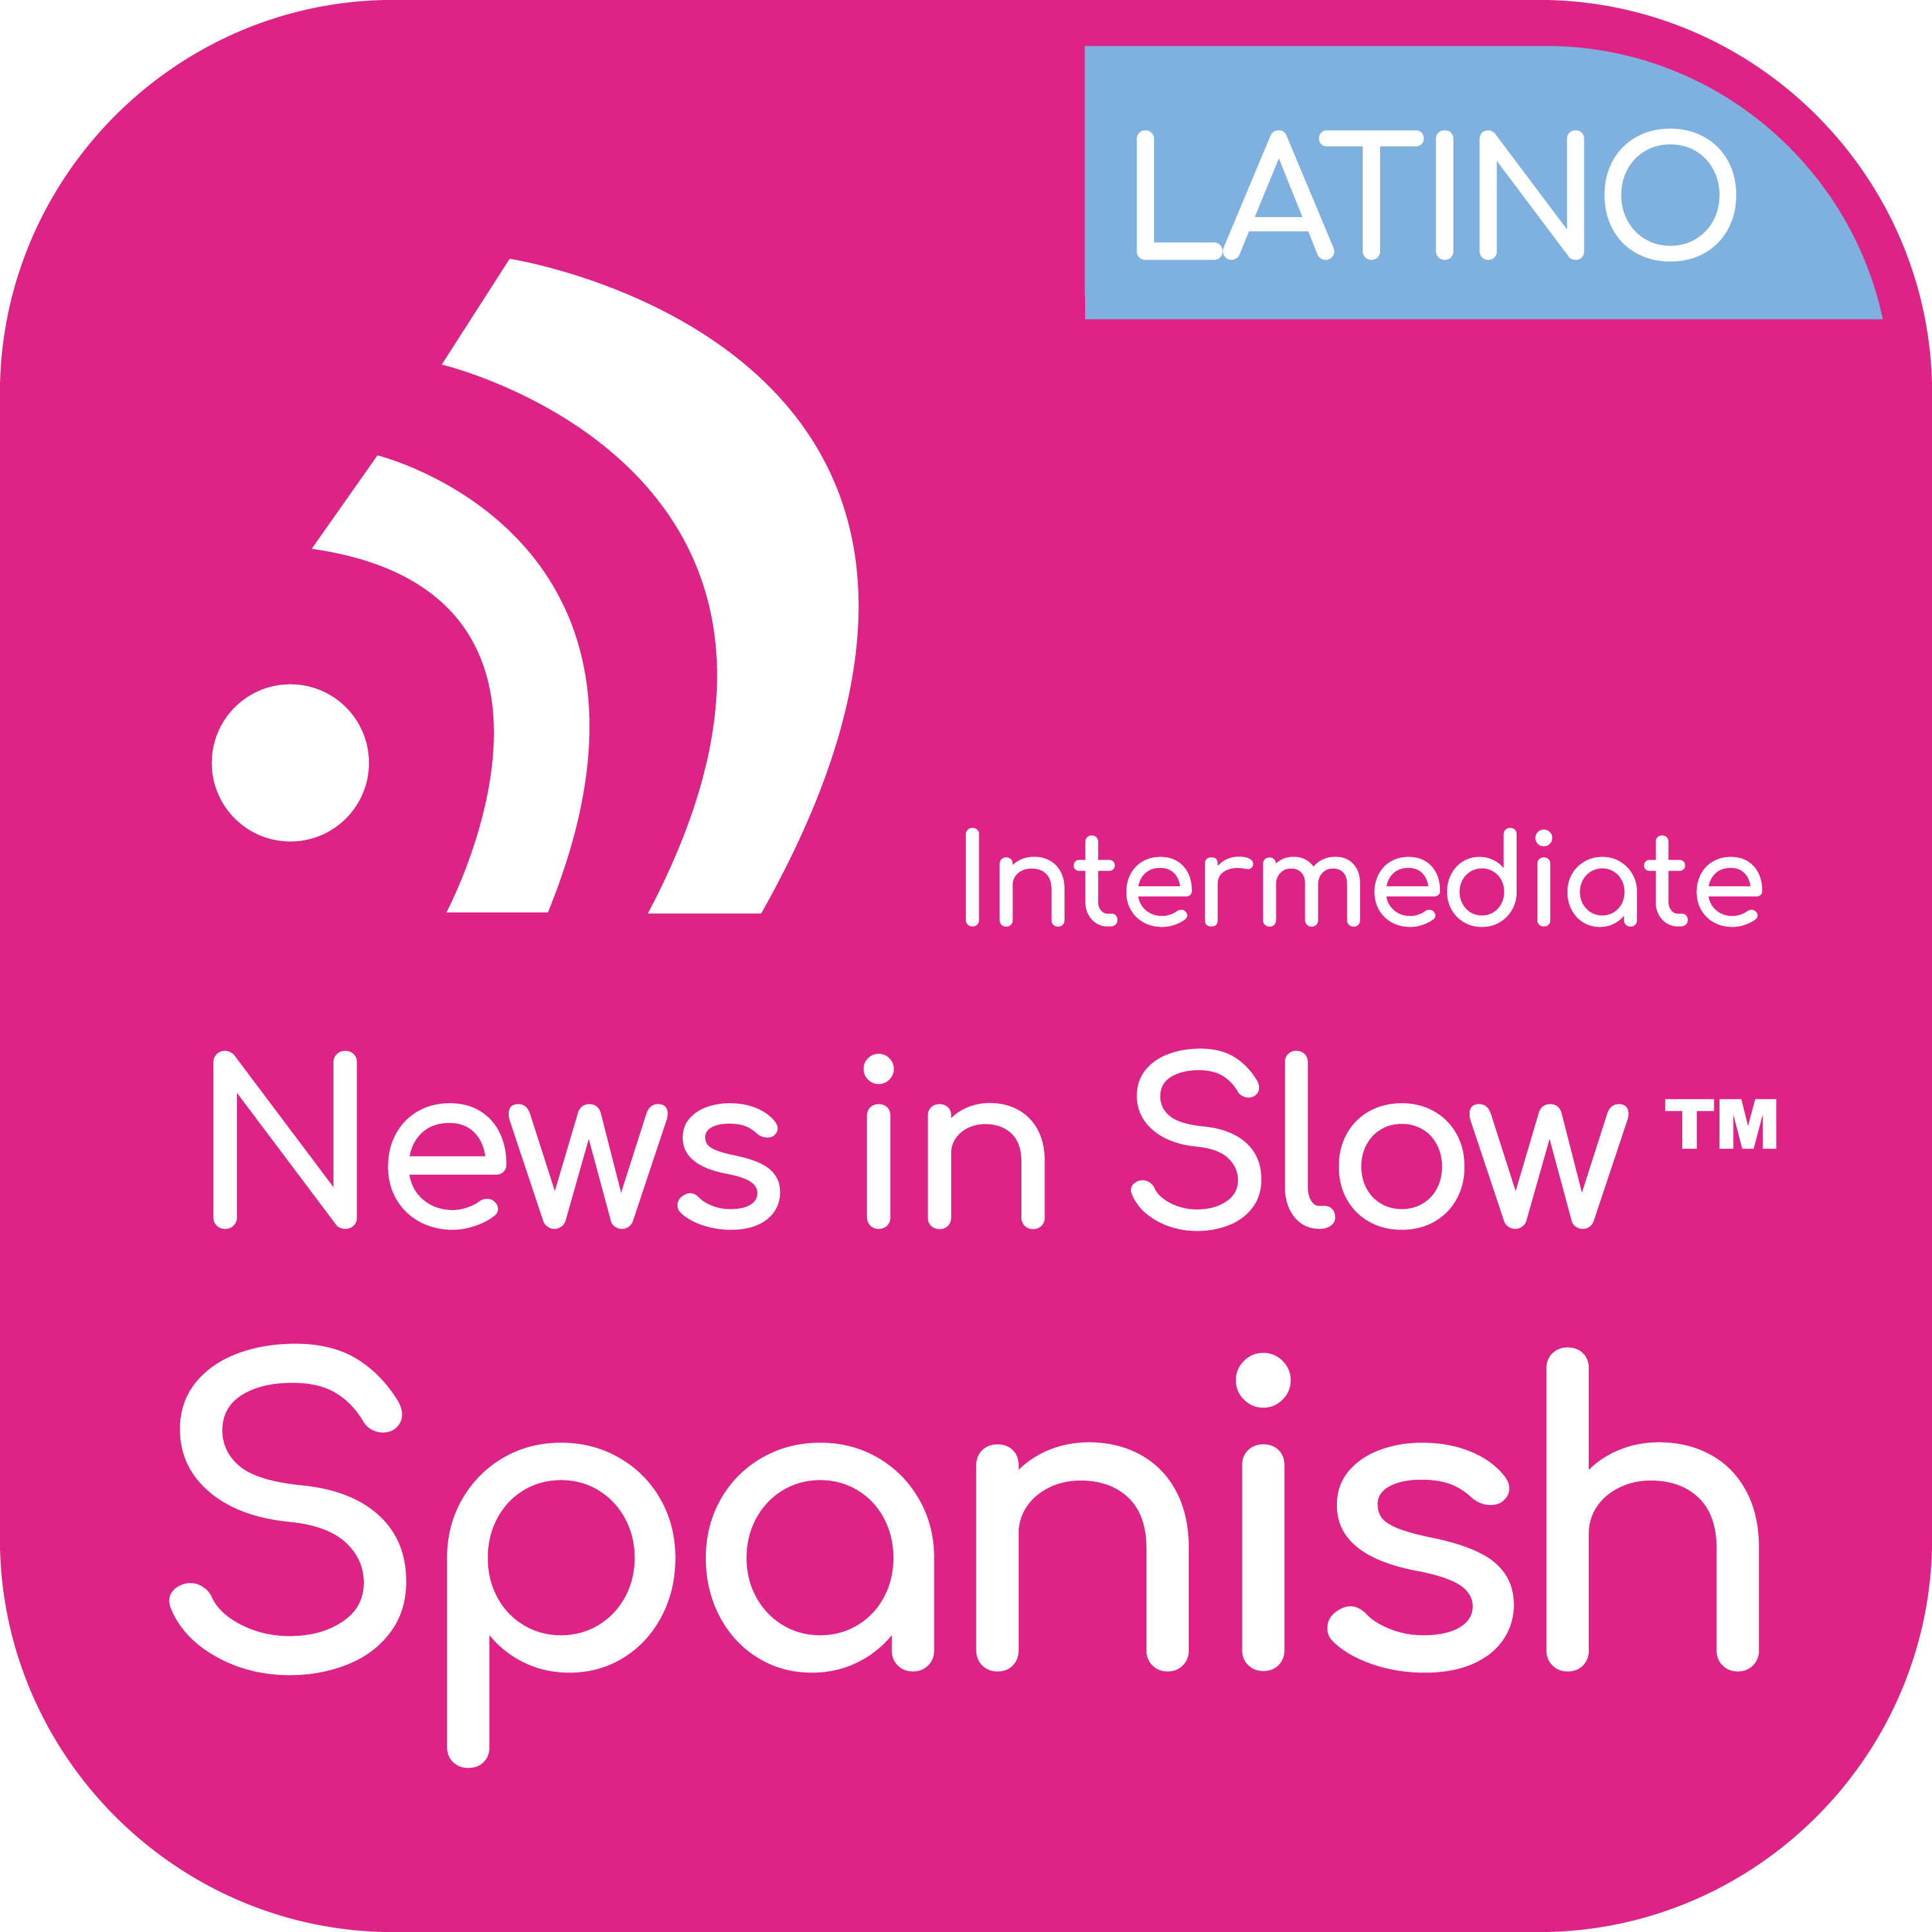 News In Slow Spanish Latino #401 - Spanish Course with Current Events